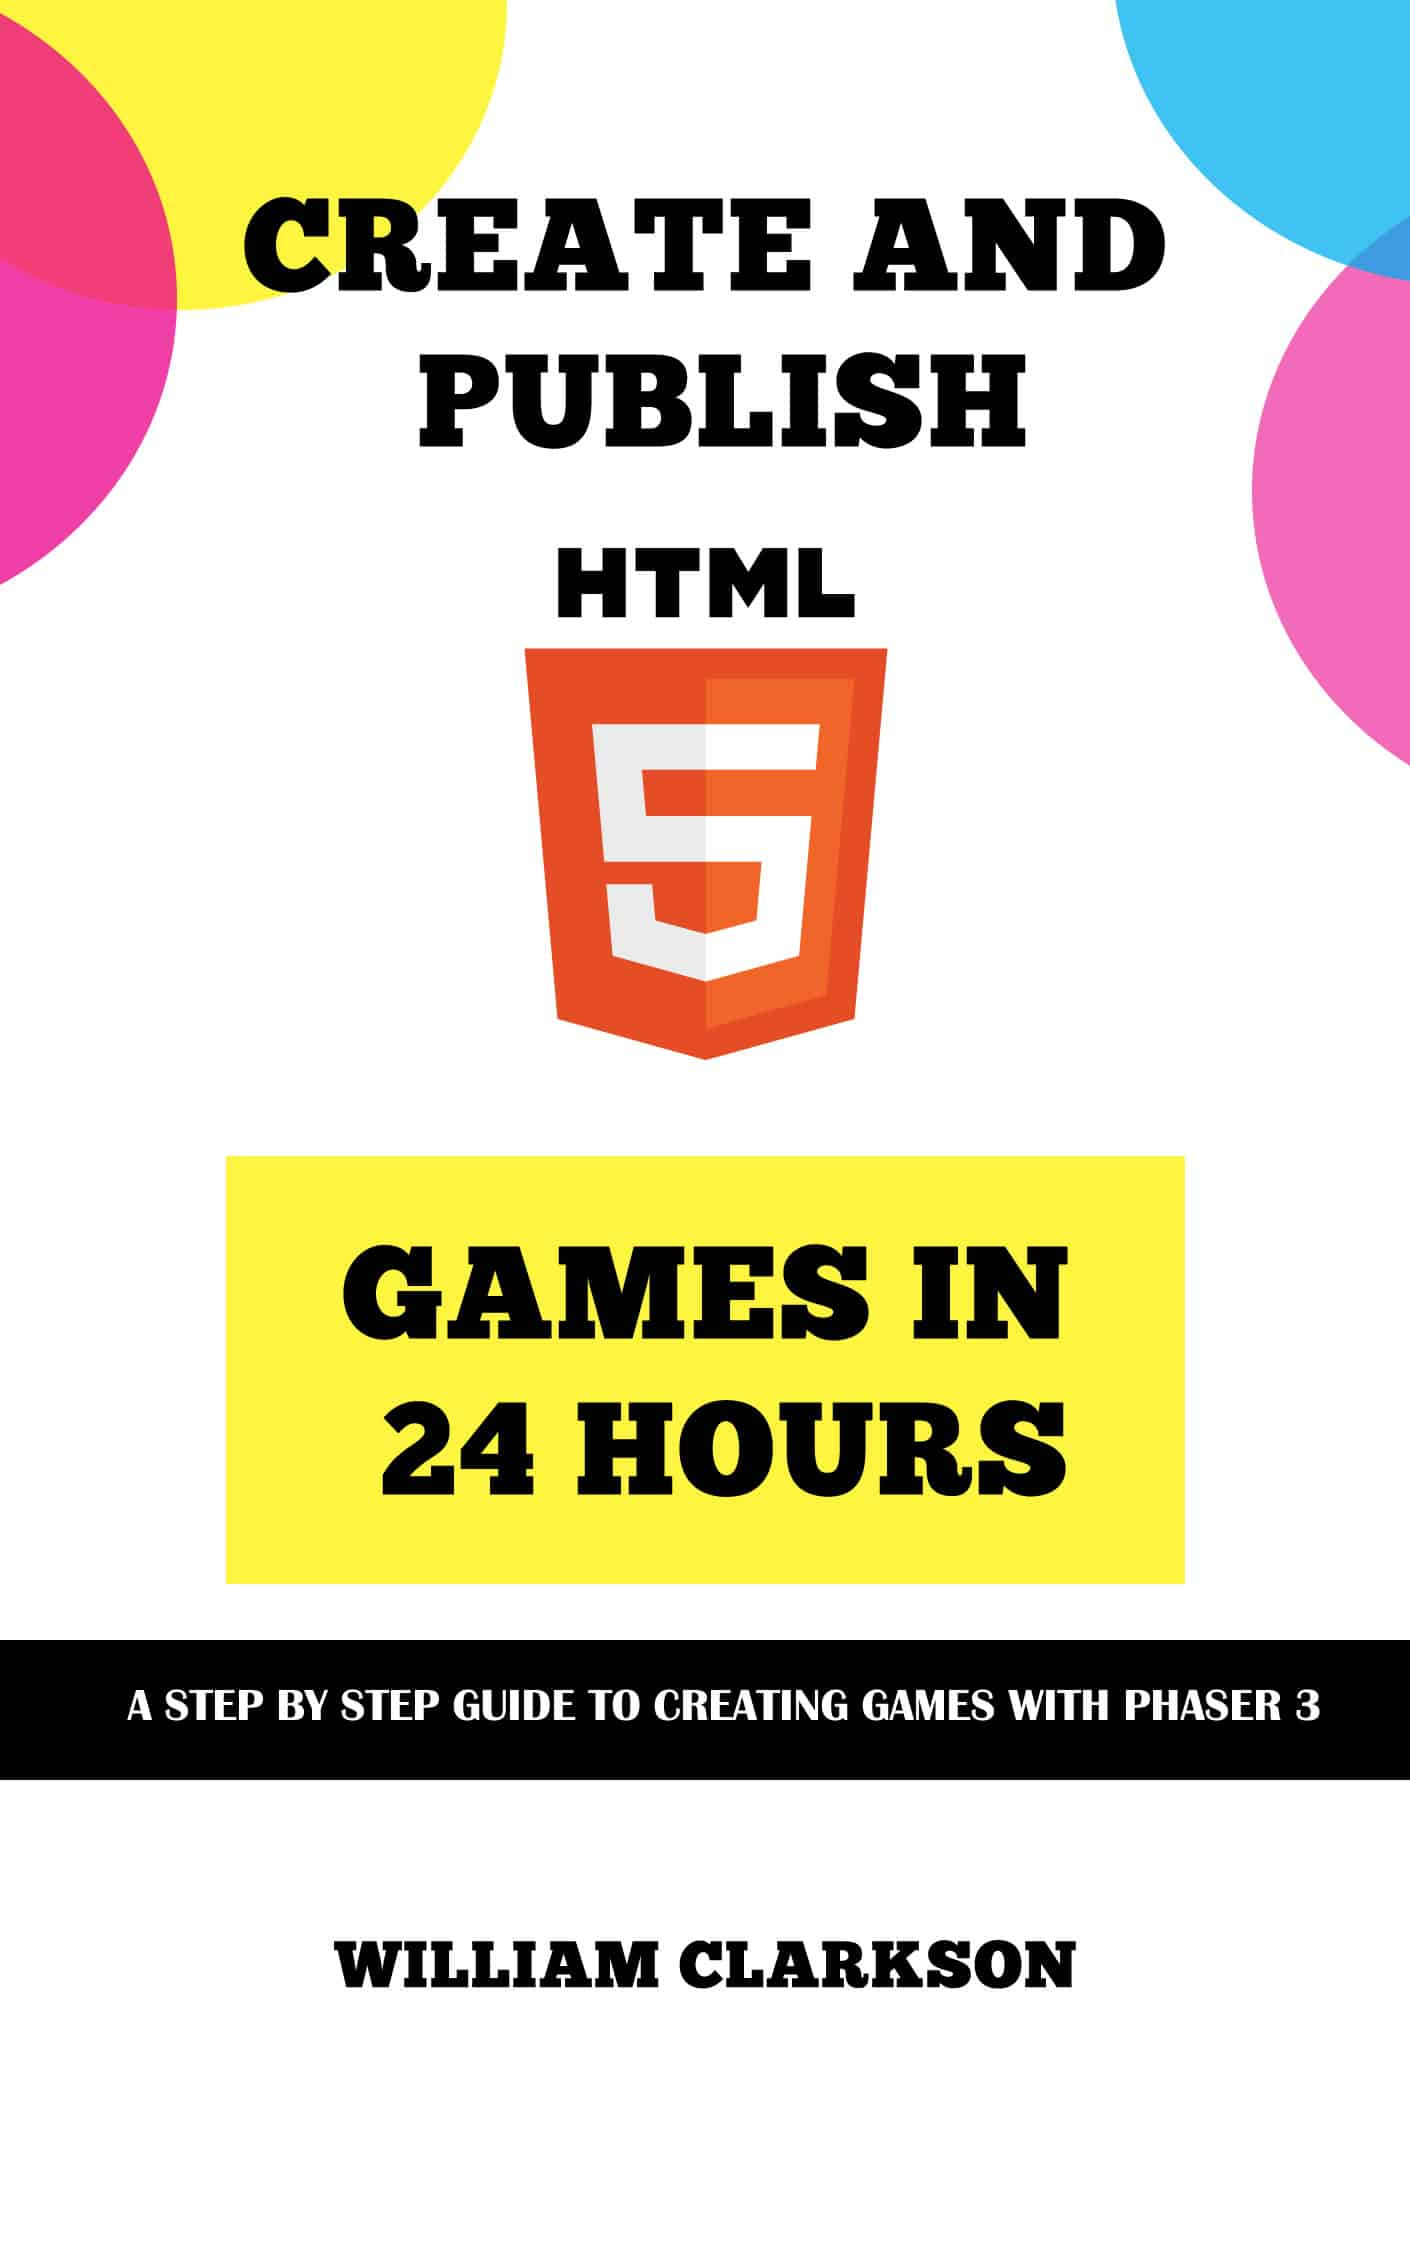 Create and Publish HTML5 Games in 24 Hours